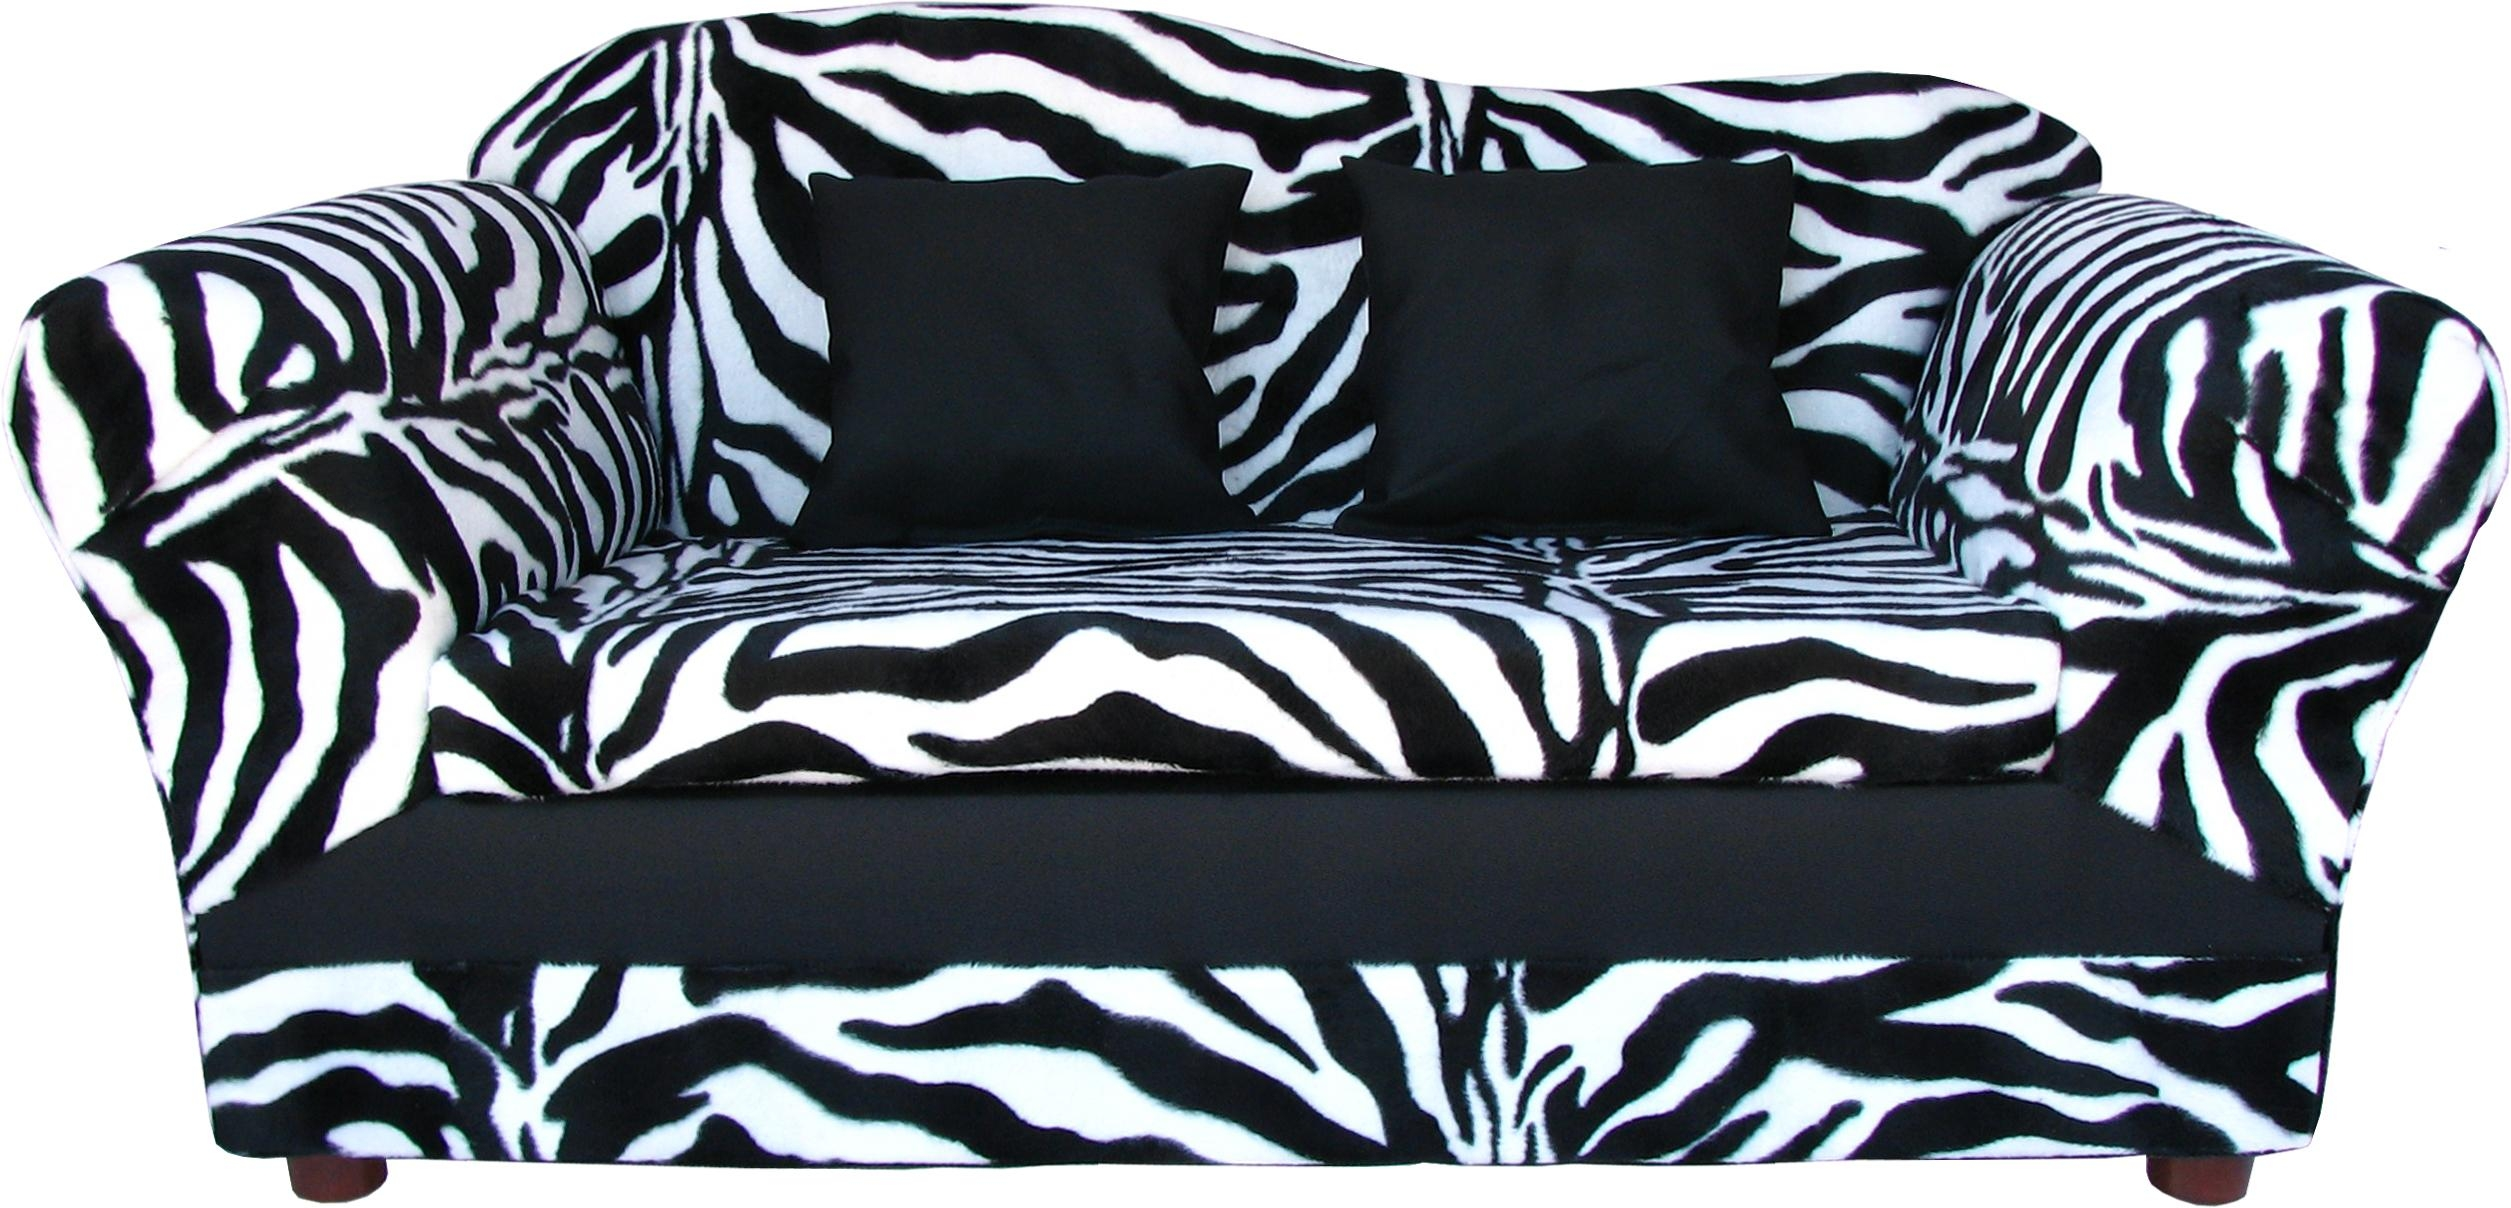 Zebra Sofa 79 With Zebra Sofa | Jinanhongyu with regard to Kids Sofa Chair And Ottoman Set Zebra